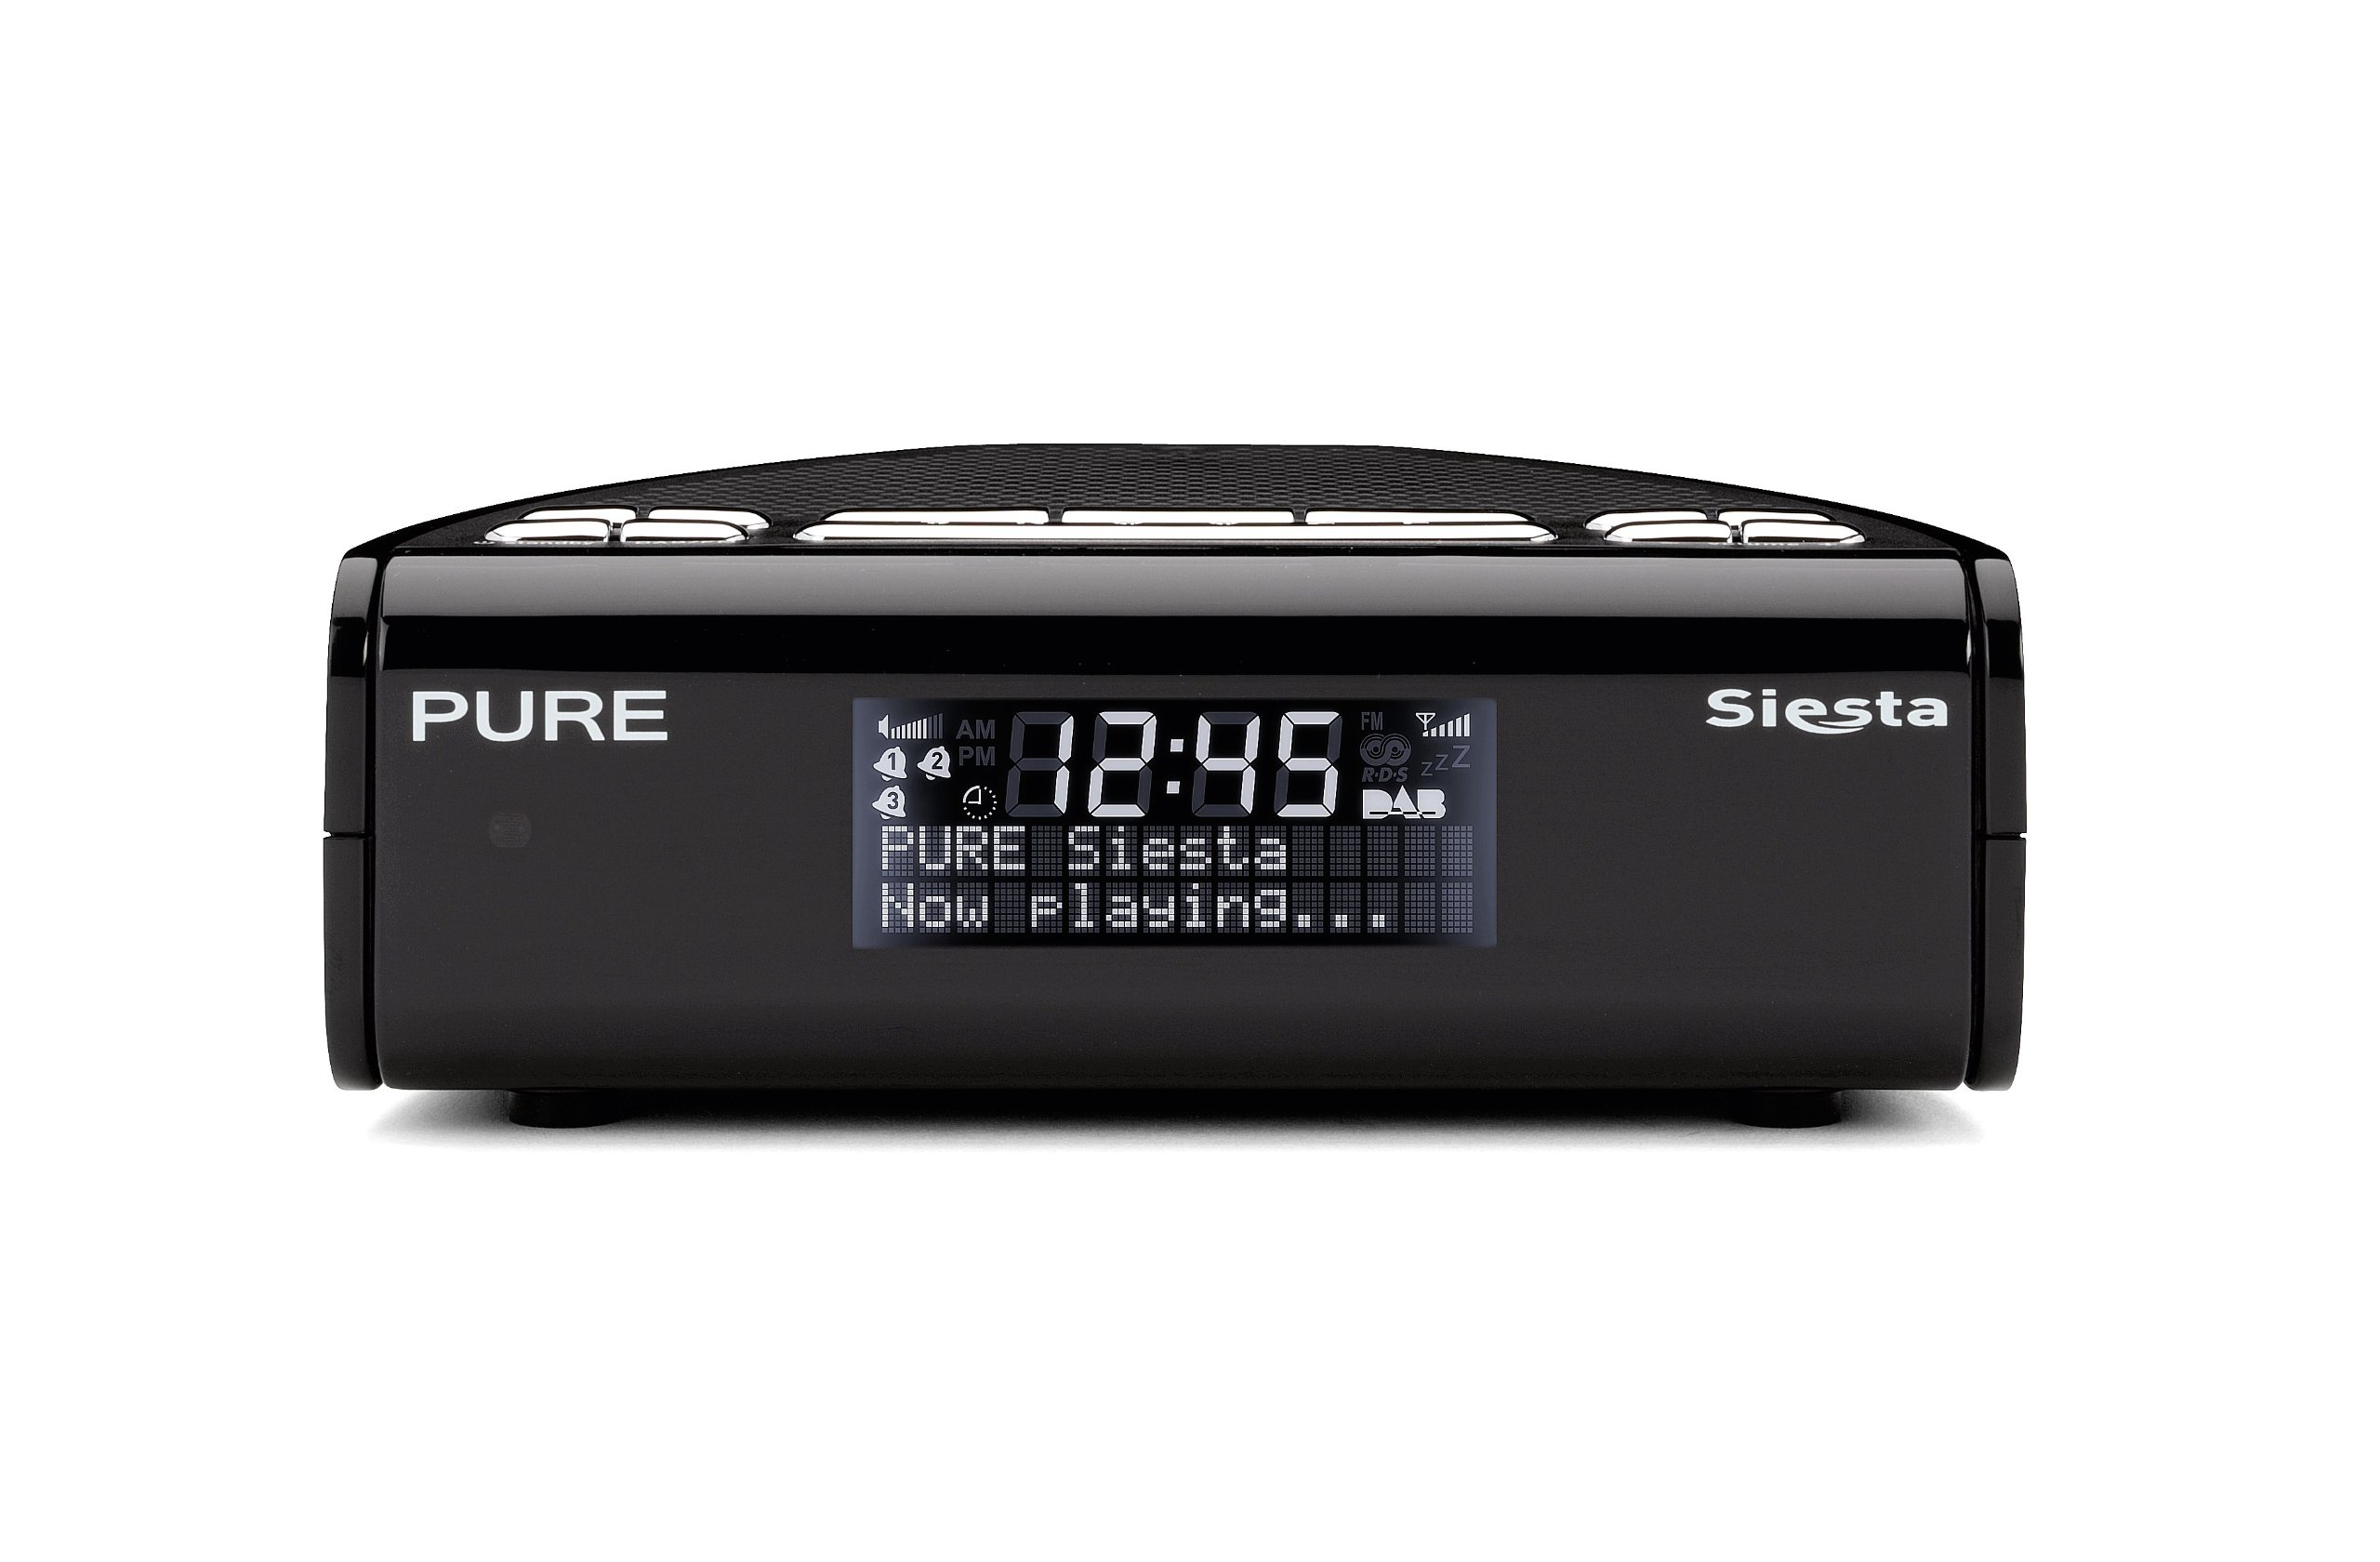 digital radio alarm clock pure pure siesta mi2 mi 2 digital dab fm alarm clock radio usb. Black Bedroom Furniture Sets. Home Design Ideas